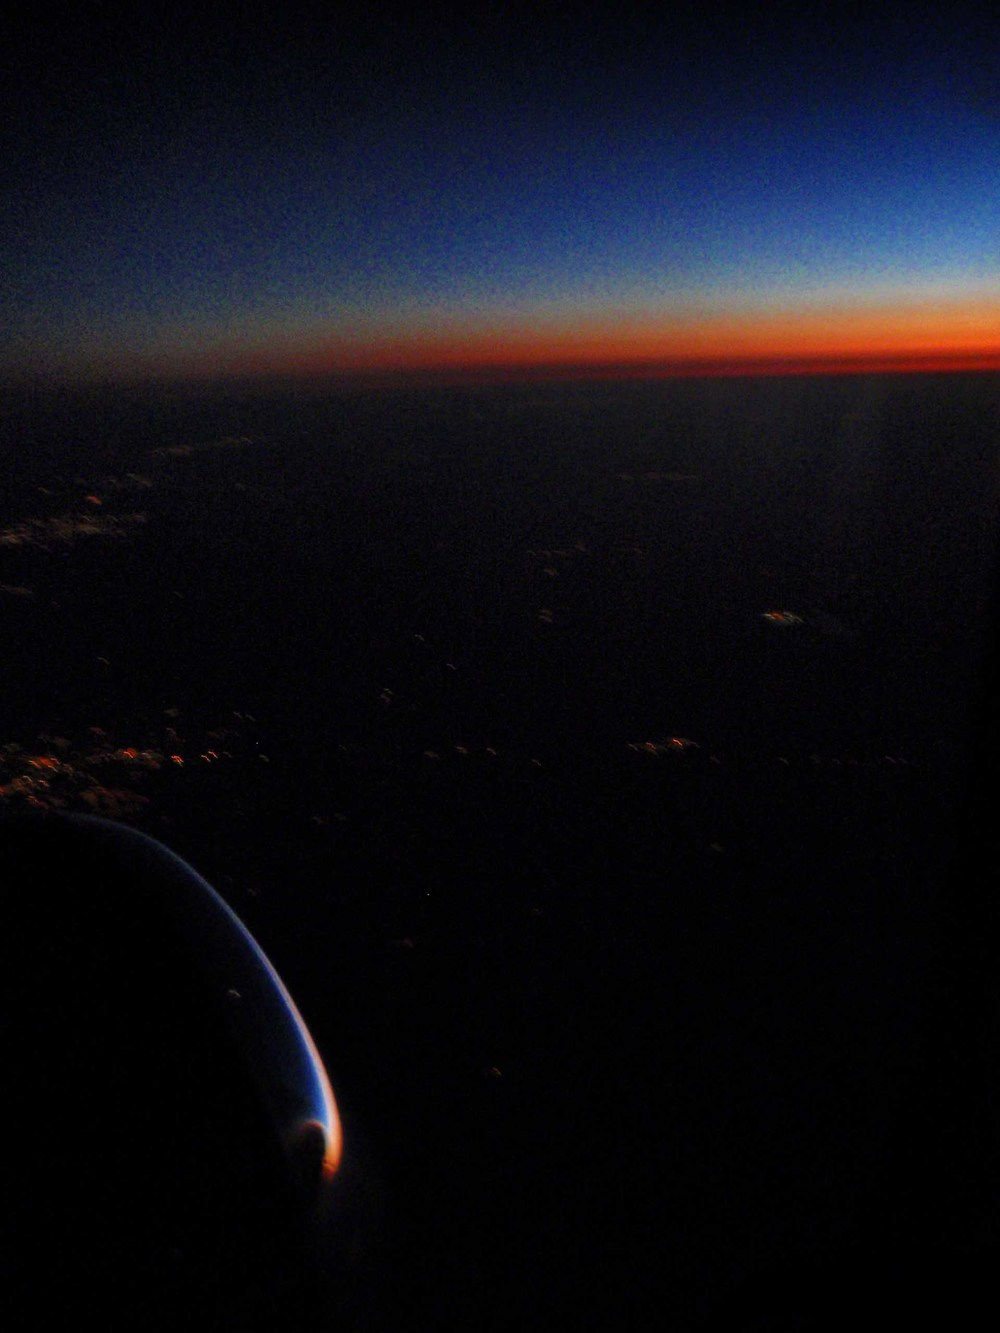 AirplaneSunset.jpg